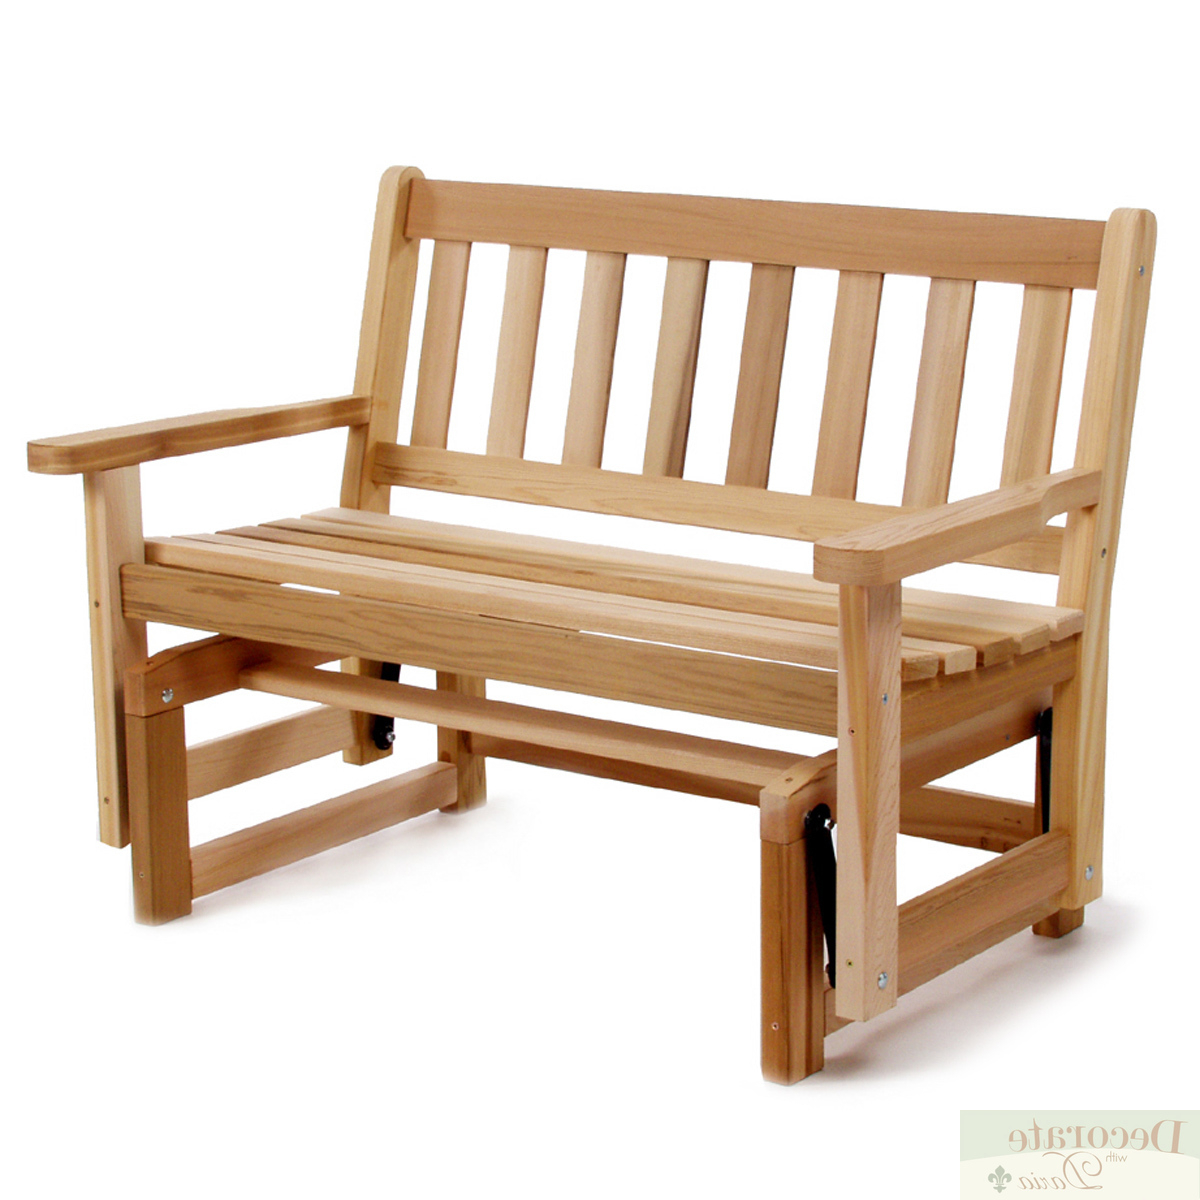 """Preferred Details About Glider Bench Motion 48"""" Red Cedar Handcrafted Curved Seat Shaker Style Back New Intended For 2 Person Natural Cedar Wood Outdoor Gliders (View 17 of 30)"""